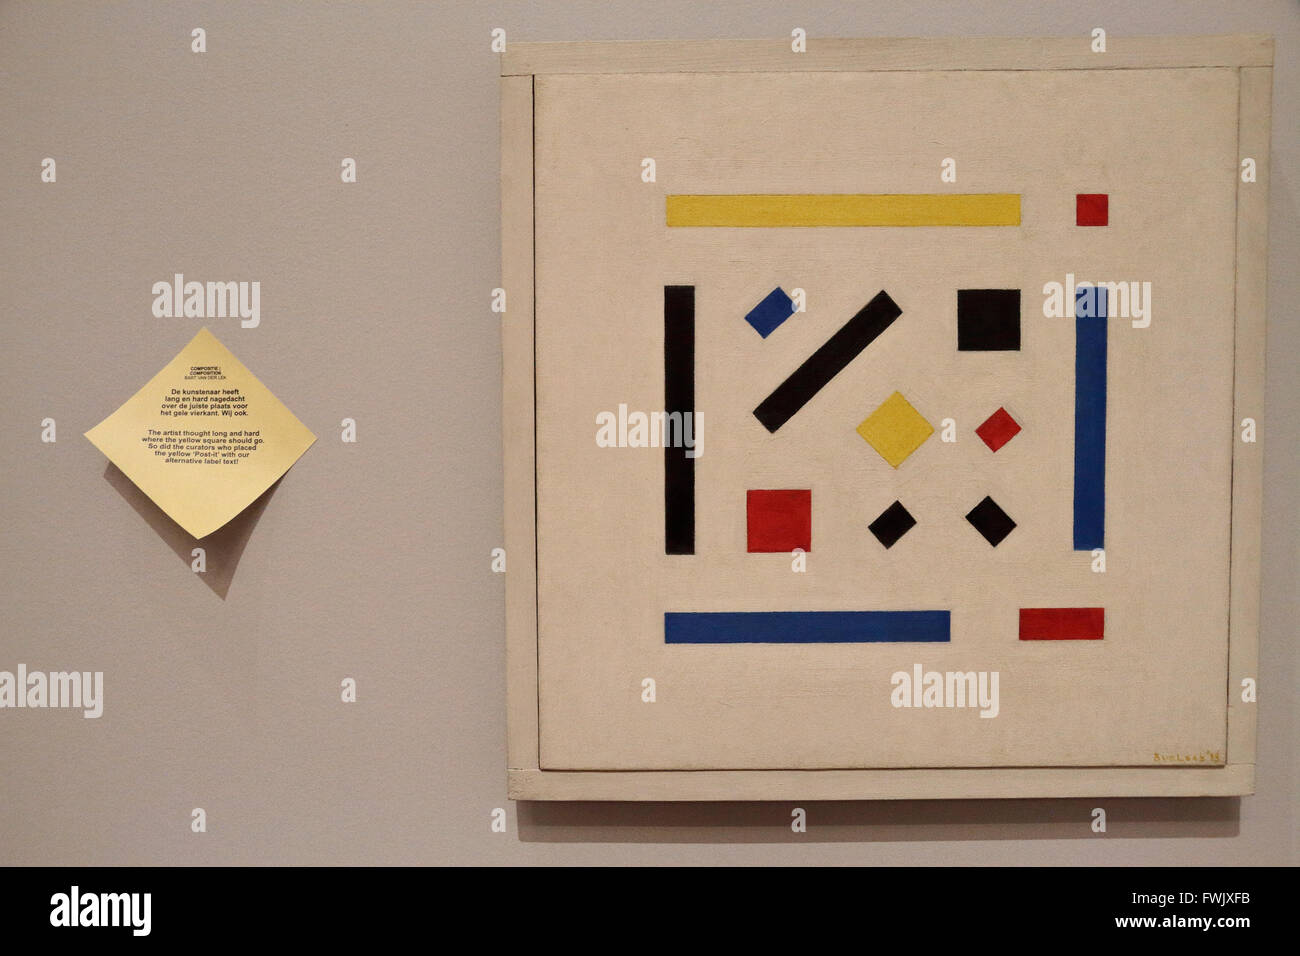 'Composition' by Bart can der Leck (1918) with 'Post-it' in the Rijksmuseum, Amsterdam, Netherlands. - Stock Image